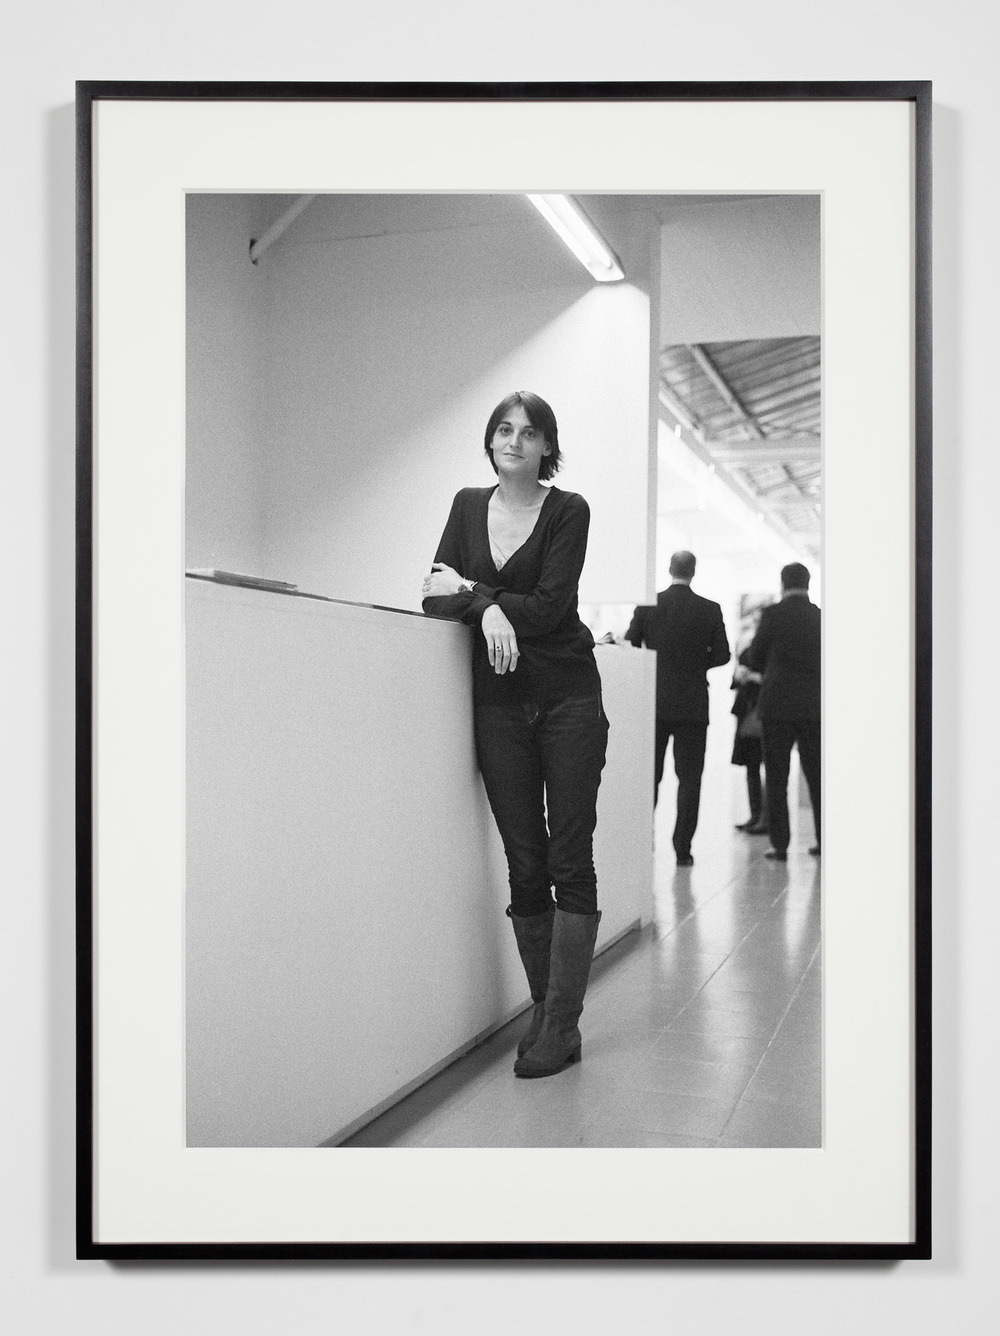 Gallery Manager, Brussels, Belgium, November 8, 2008    2011   Epson Ultrachrome K3 archival ink jet print on Hahnemühle Photo Rag paper  36 3/8 x 26 3/8 inches   Industrial Portraits, 2008–